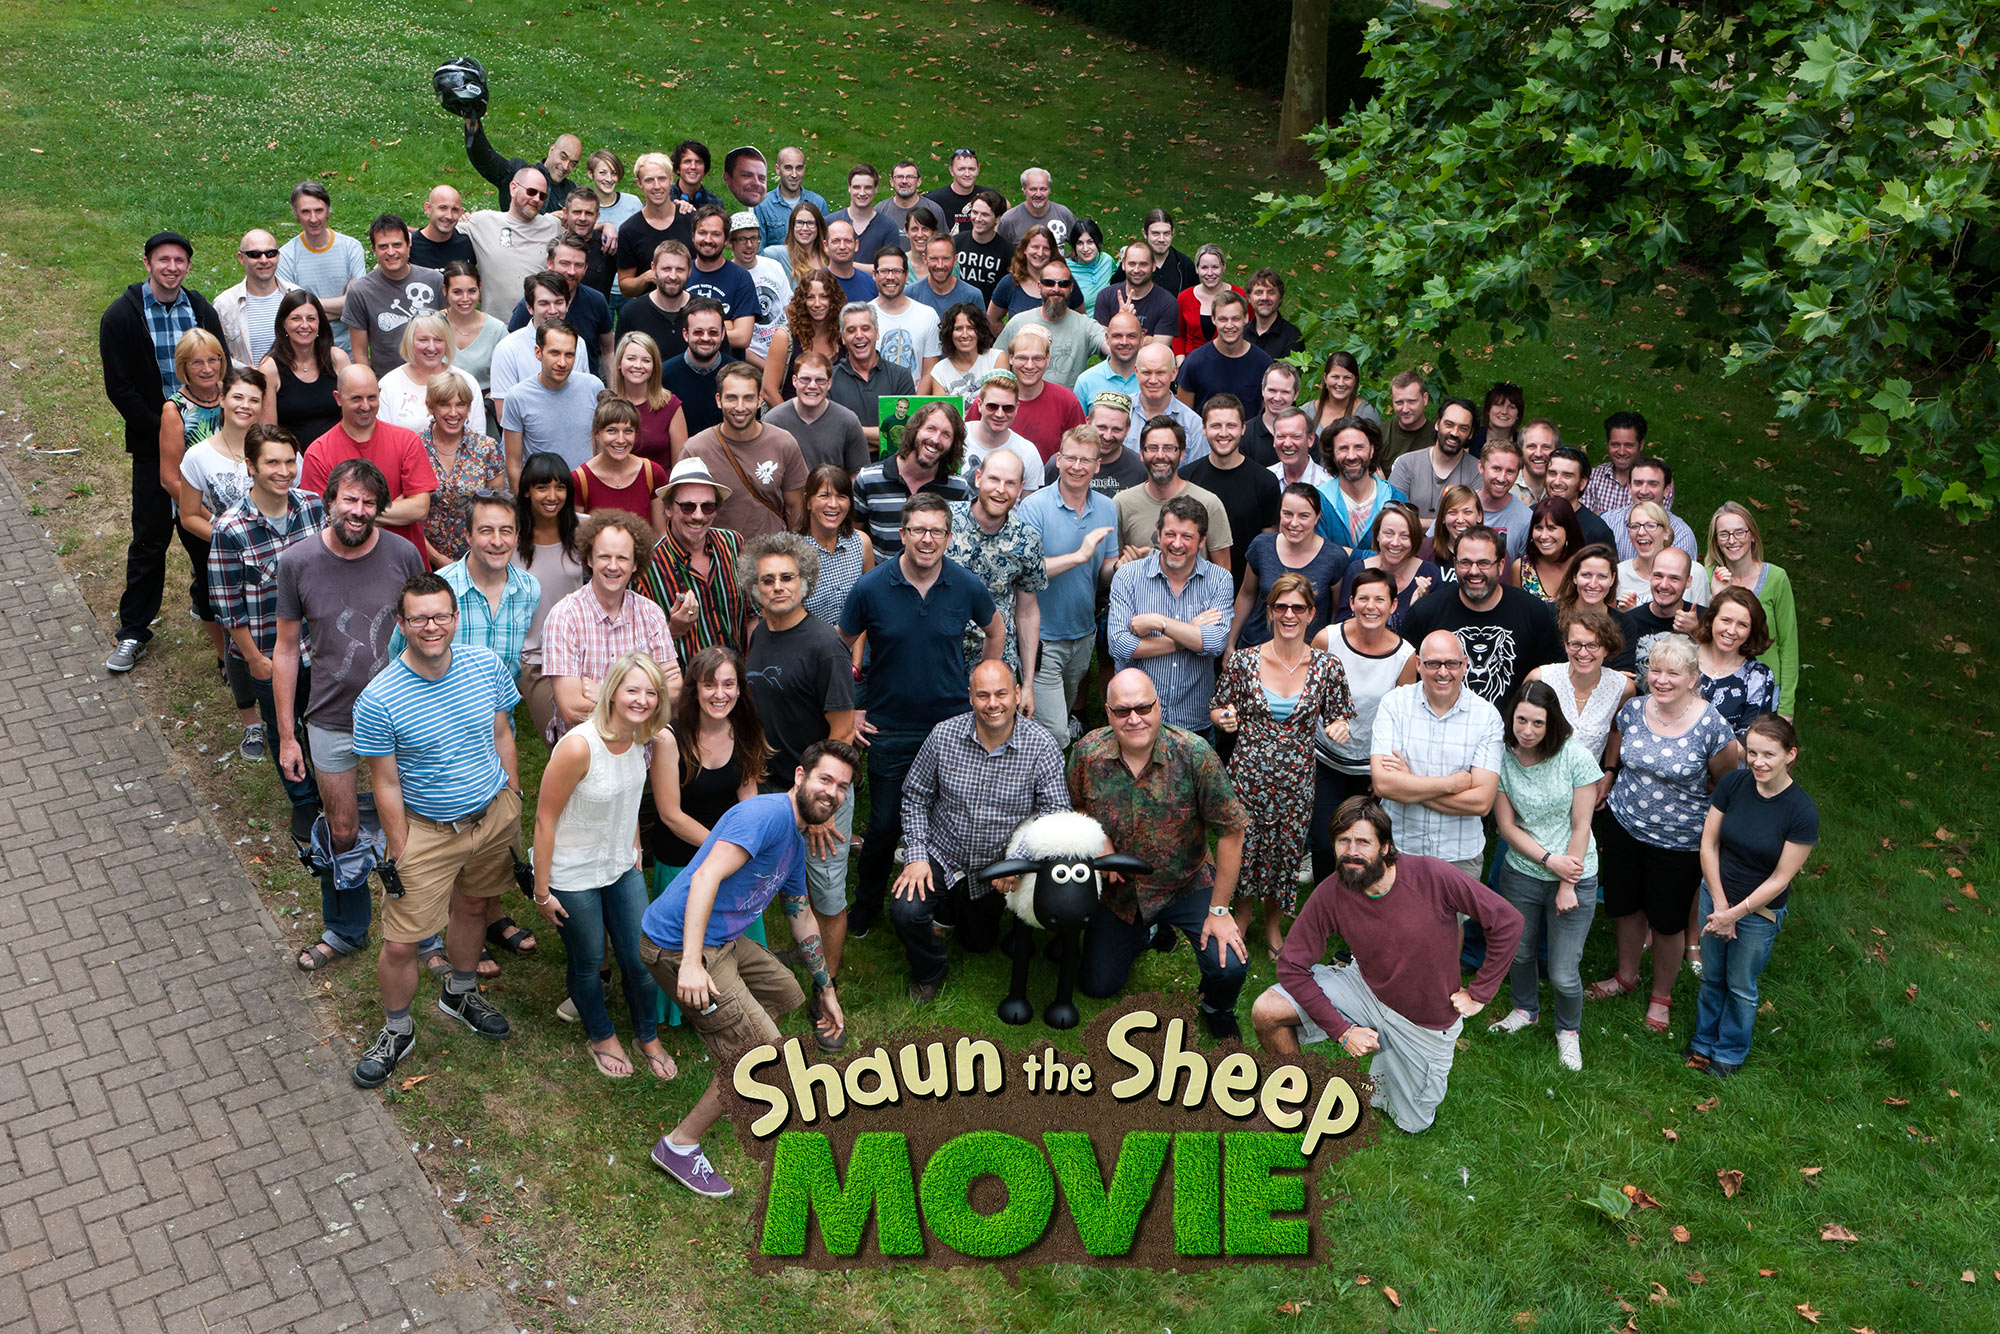 A photo of the movie's crew. Click to enlarge. (Photo: Chris Johnson)